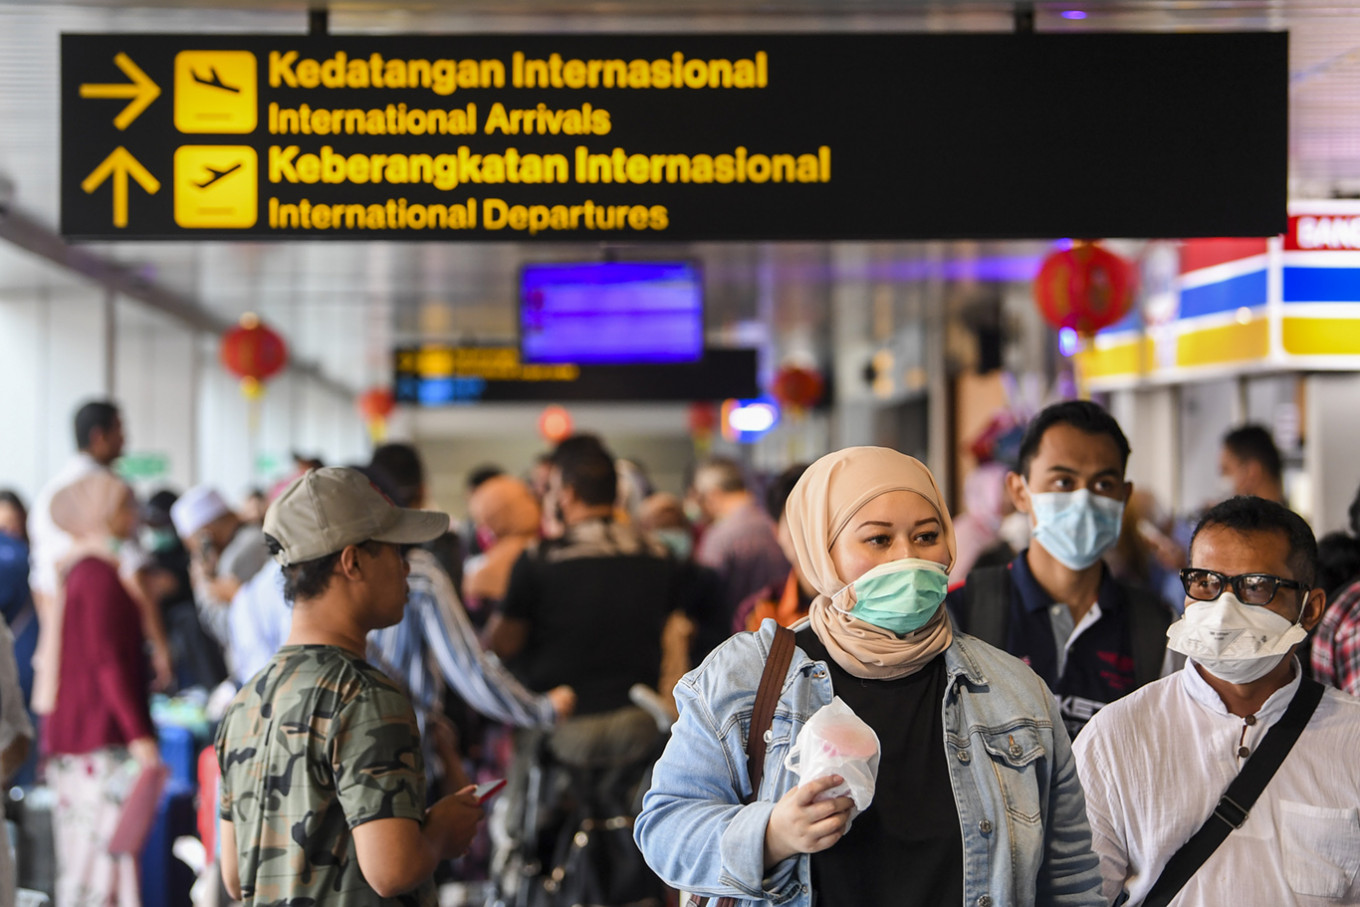 Coronavirus: Can Indonesians stay calm and cool?